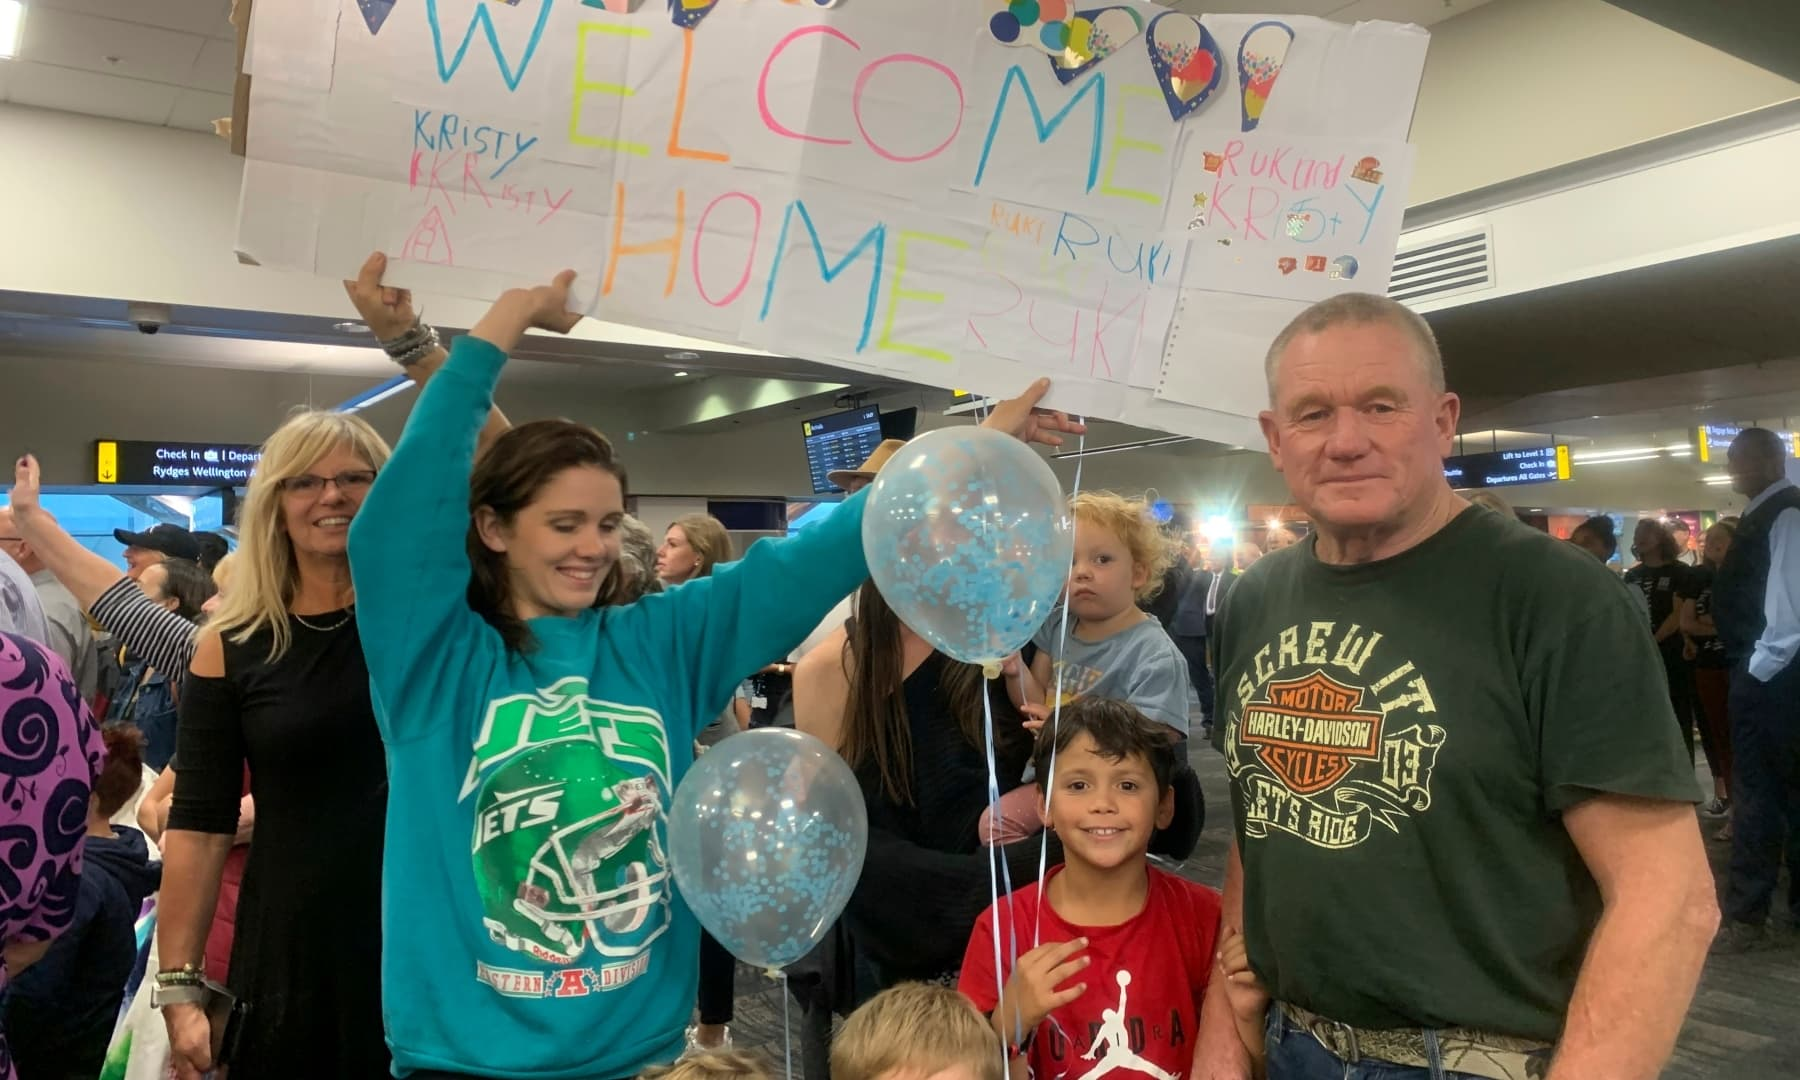 Danny Mather, right, and other family members wait at the Wellington International Airport for the arrival of Mather's pregnant daughter Kristy in Wellington, New Zealand, Monday. — AP